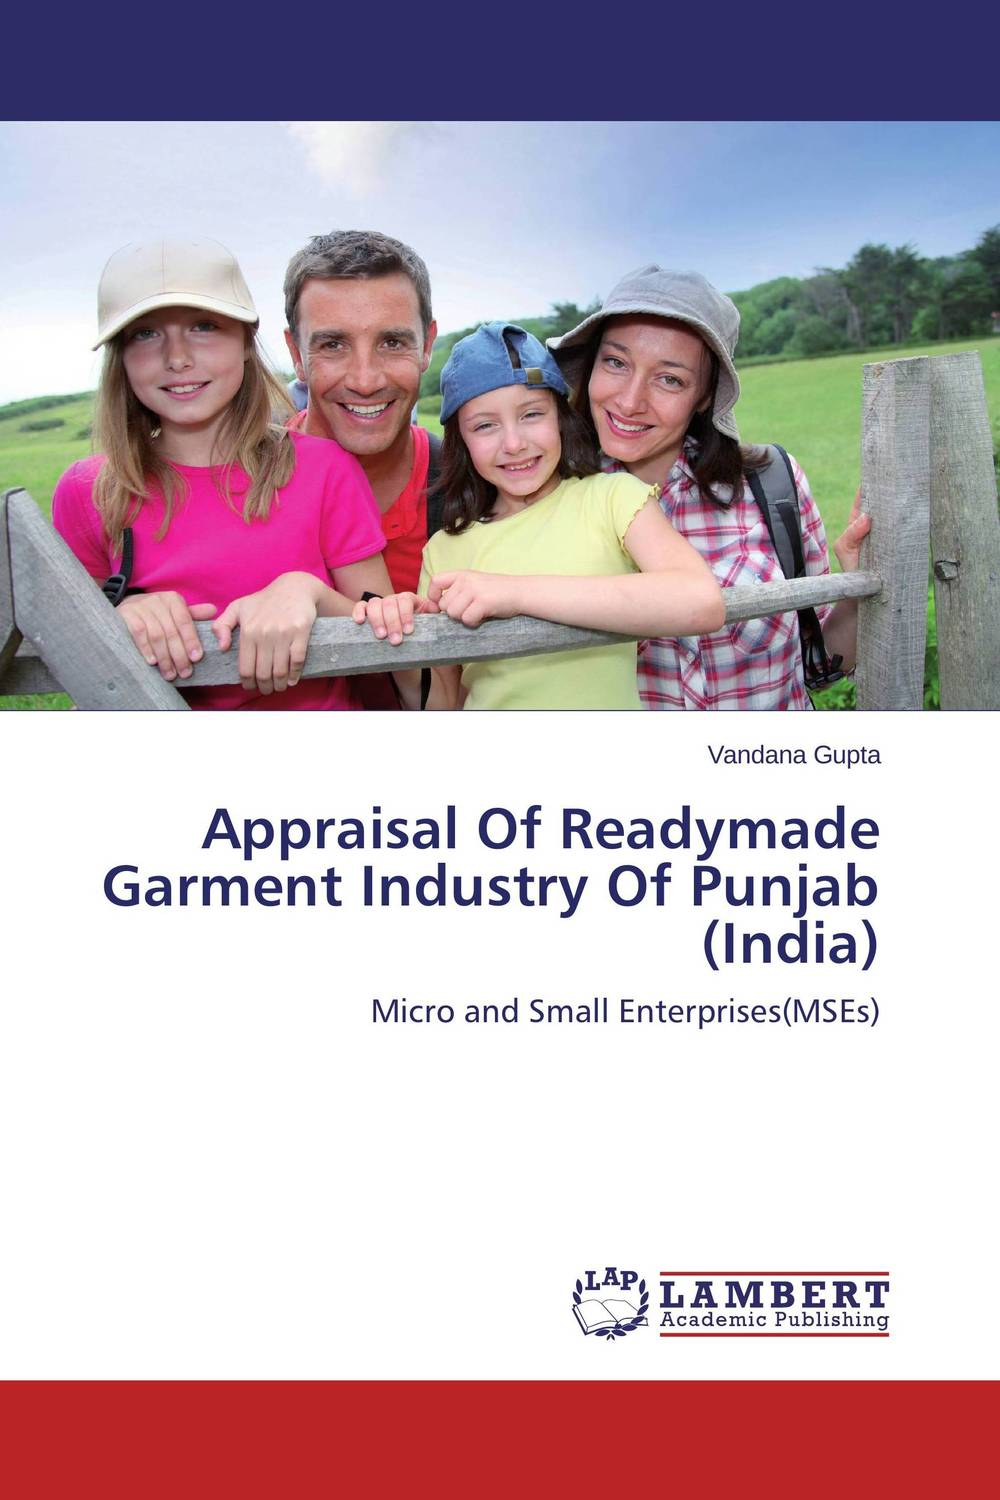 Appraisal Of Readymade Garment Industry Of Punjab (India) community resilience of village udekaran punjab india